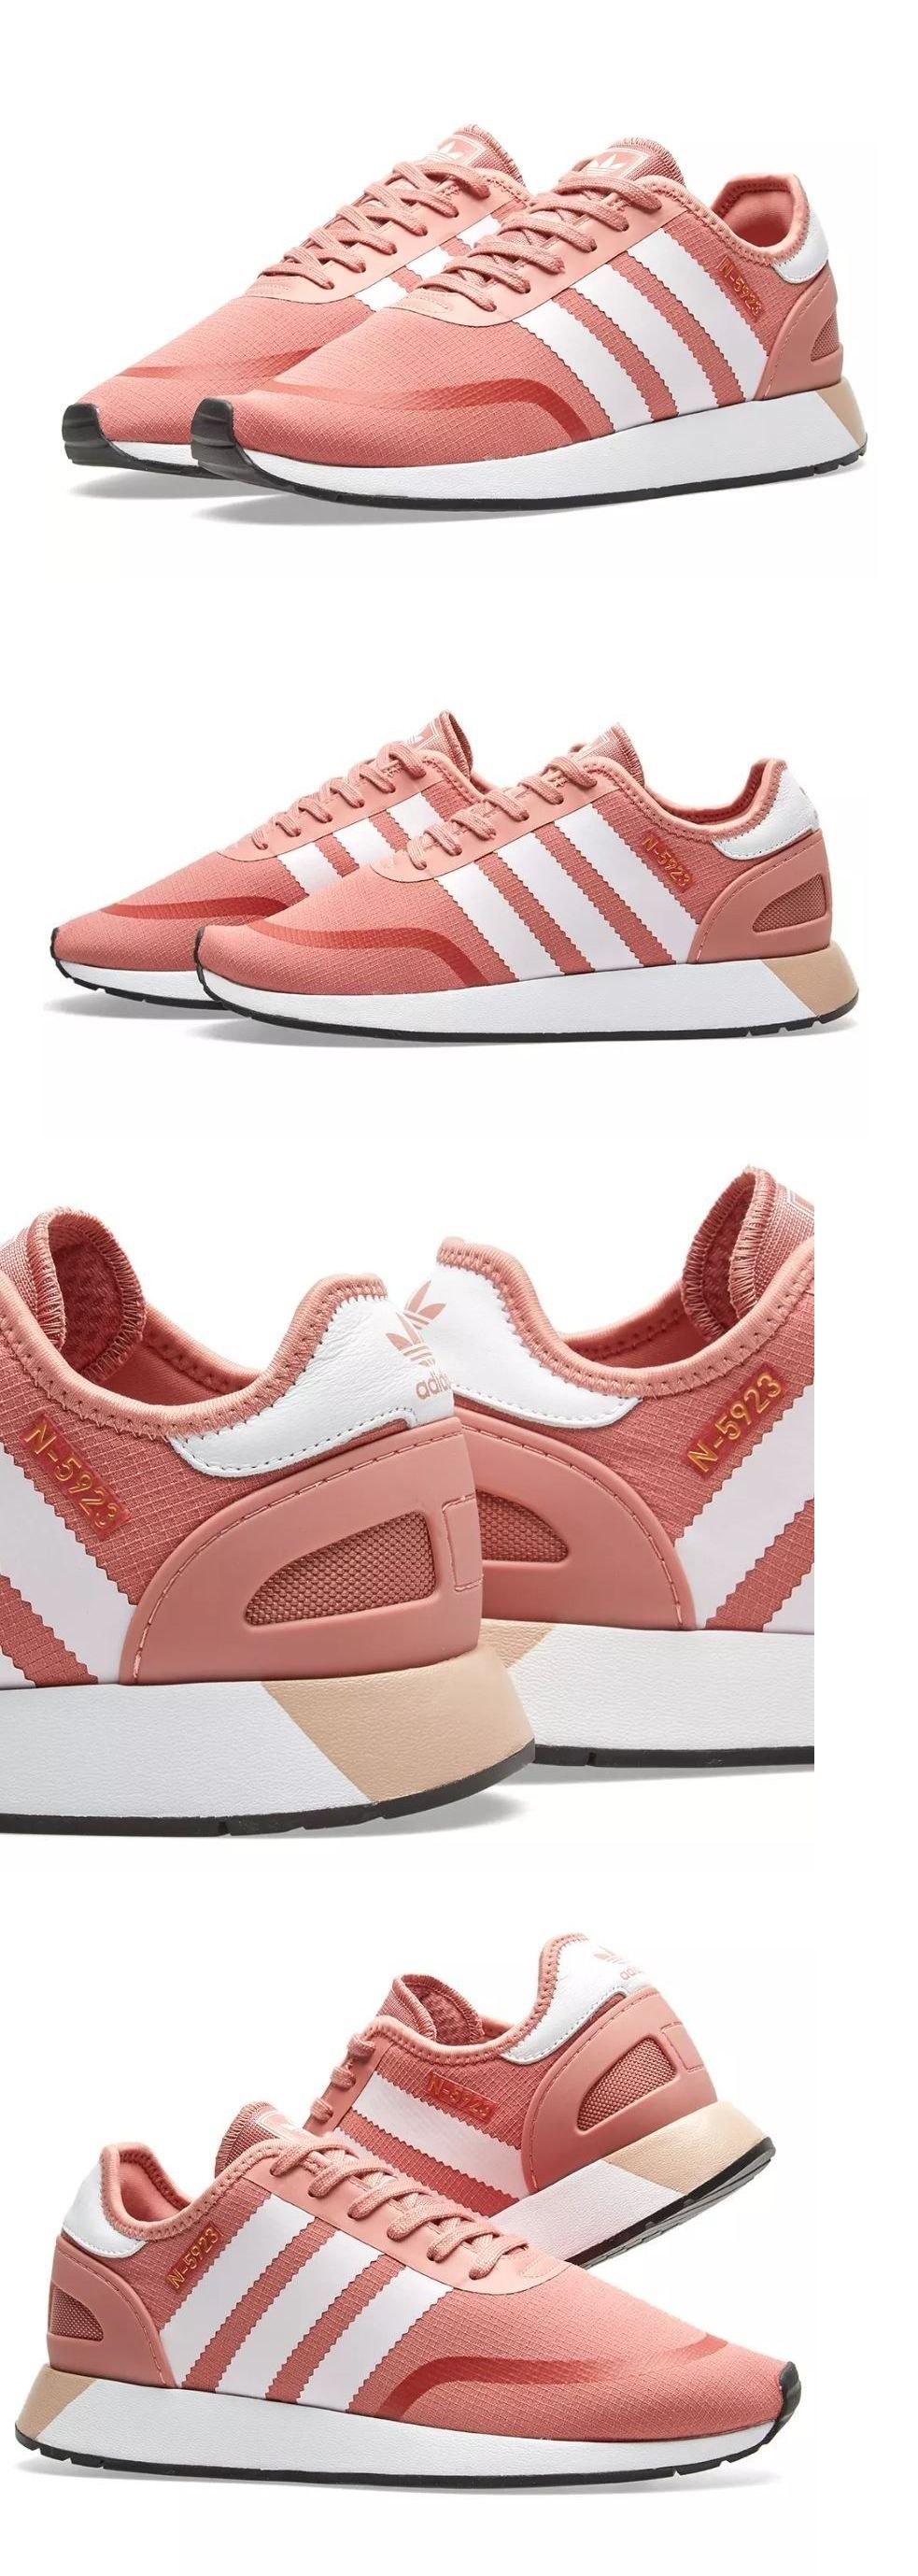 newest d62e3 22e7d Athletic 95672 Adidas Originals N-5923 W Ash Pink White Women Shoes Size  6.5 Aq0267 - BUY IT NOW ONLY 65 on eBay!